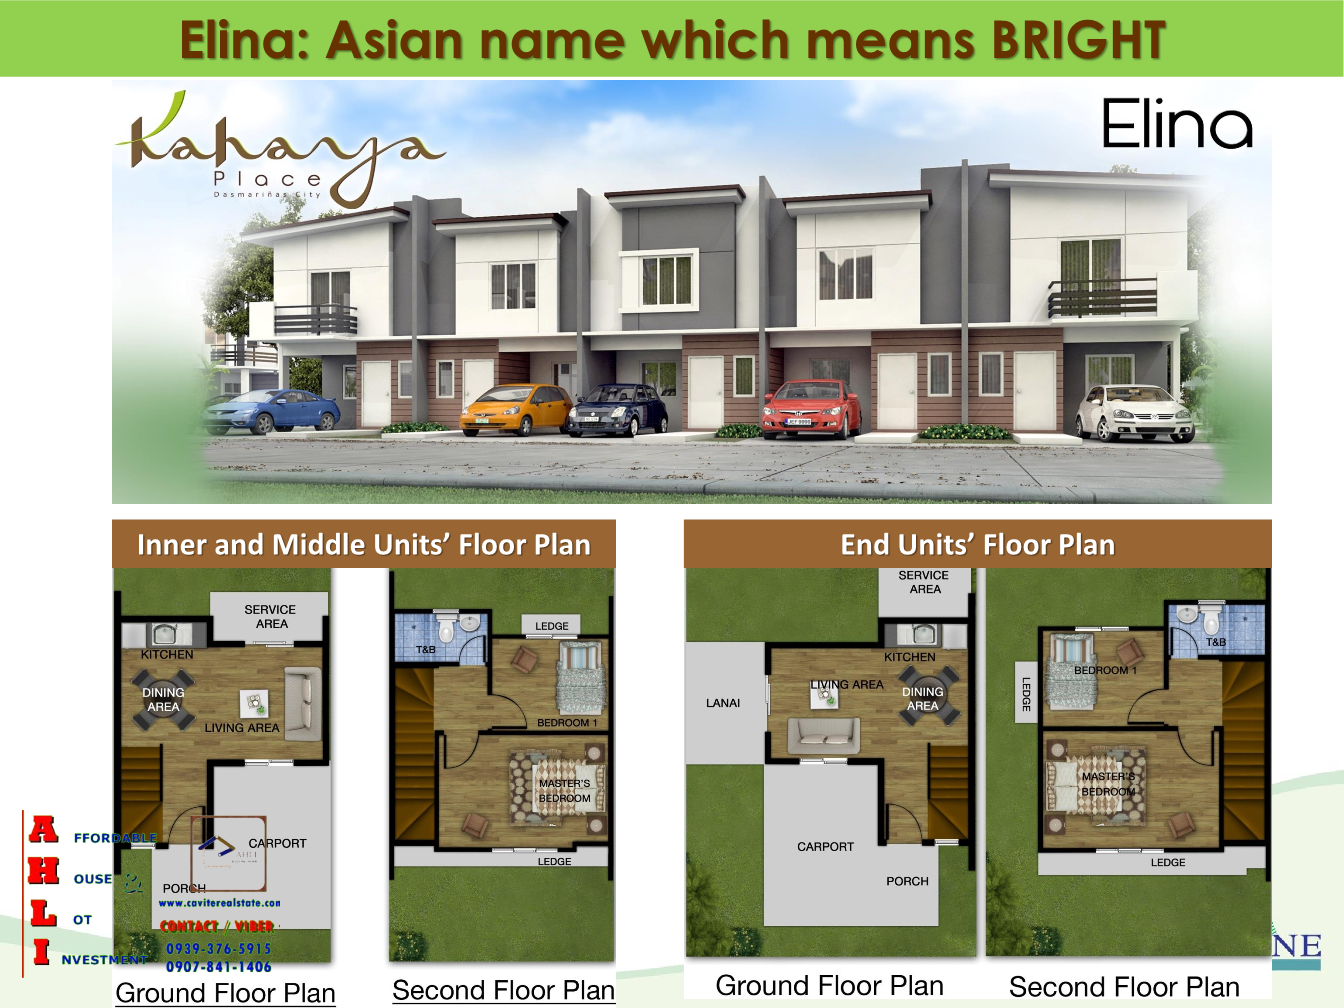 100 Villas At Fortune Place Floor Plan Pin By Ben On Floor P 100 – Villas At Fortune Place Floor Plan